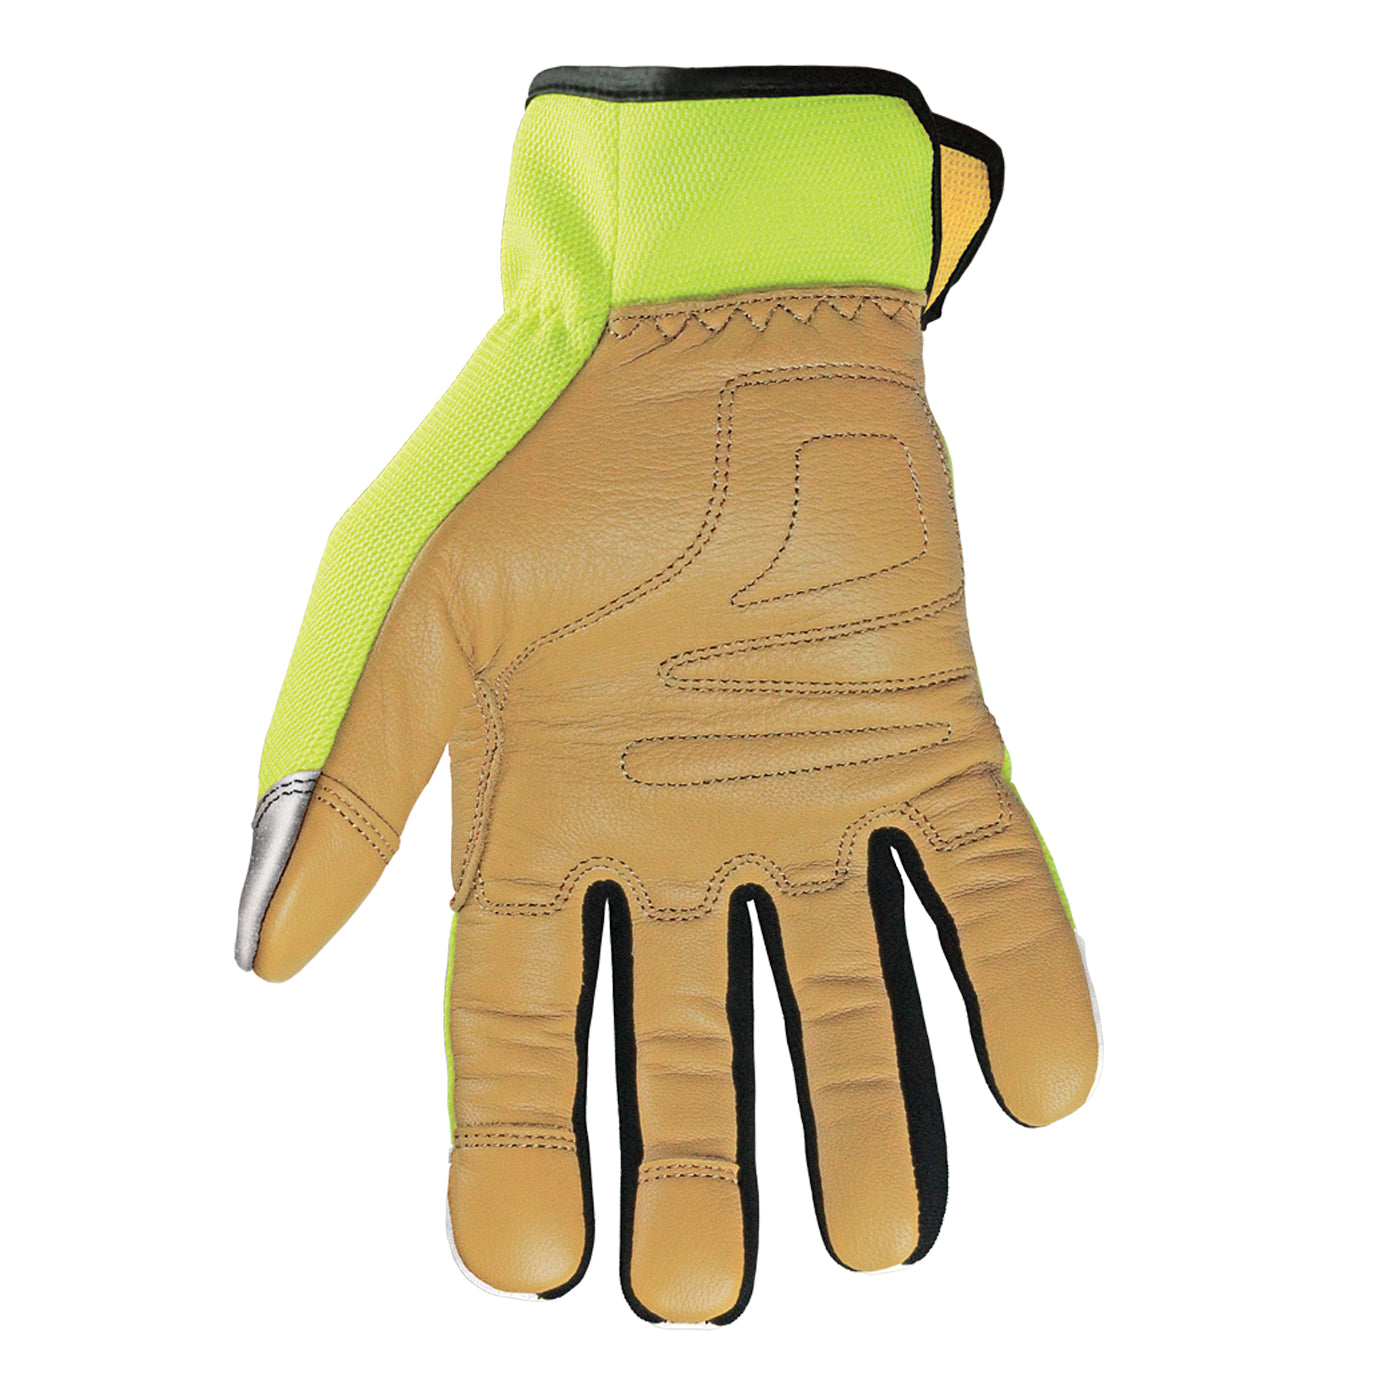 12-3190-10 Youngstown Cut Resistant Safety Lime Hybrid Glove - Main image